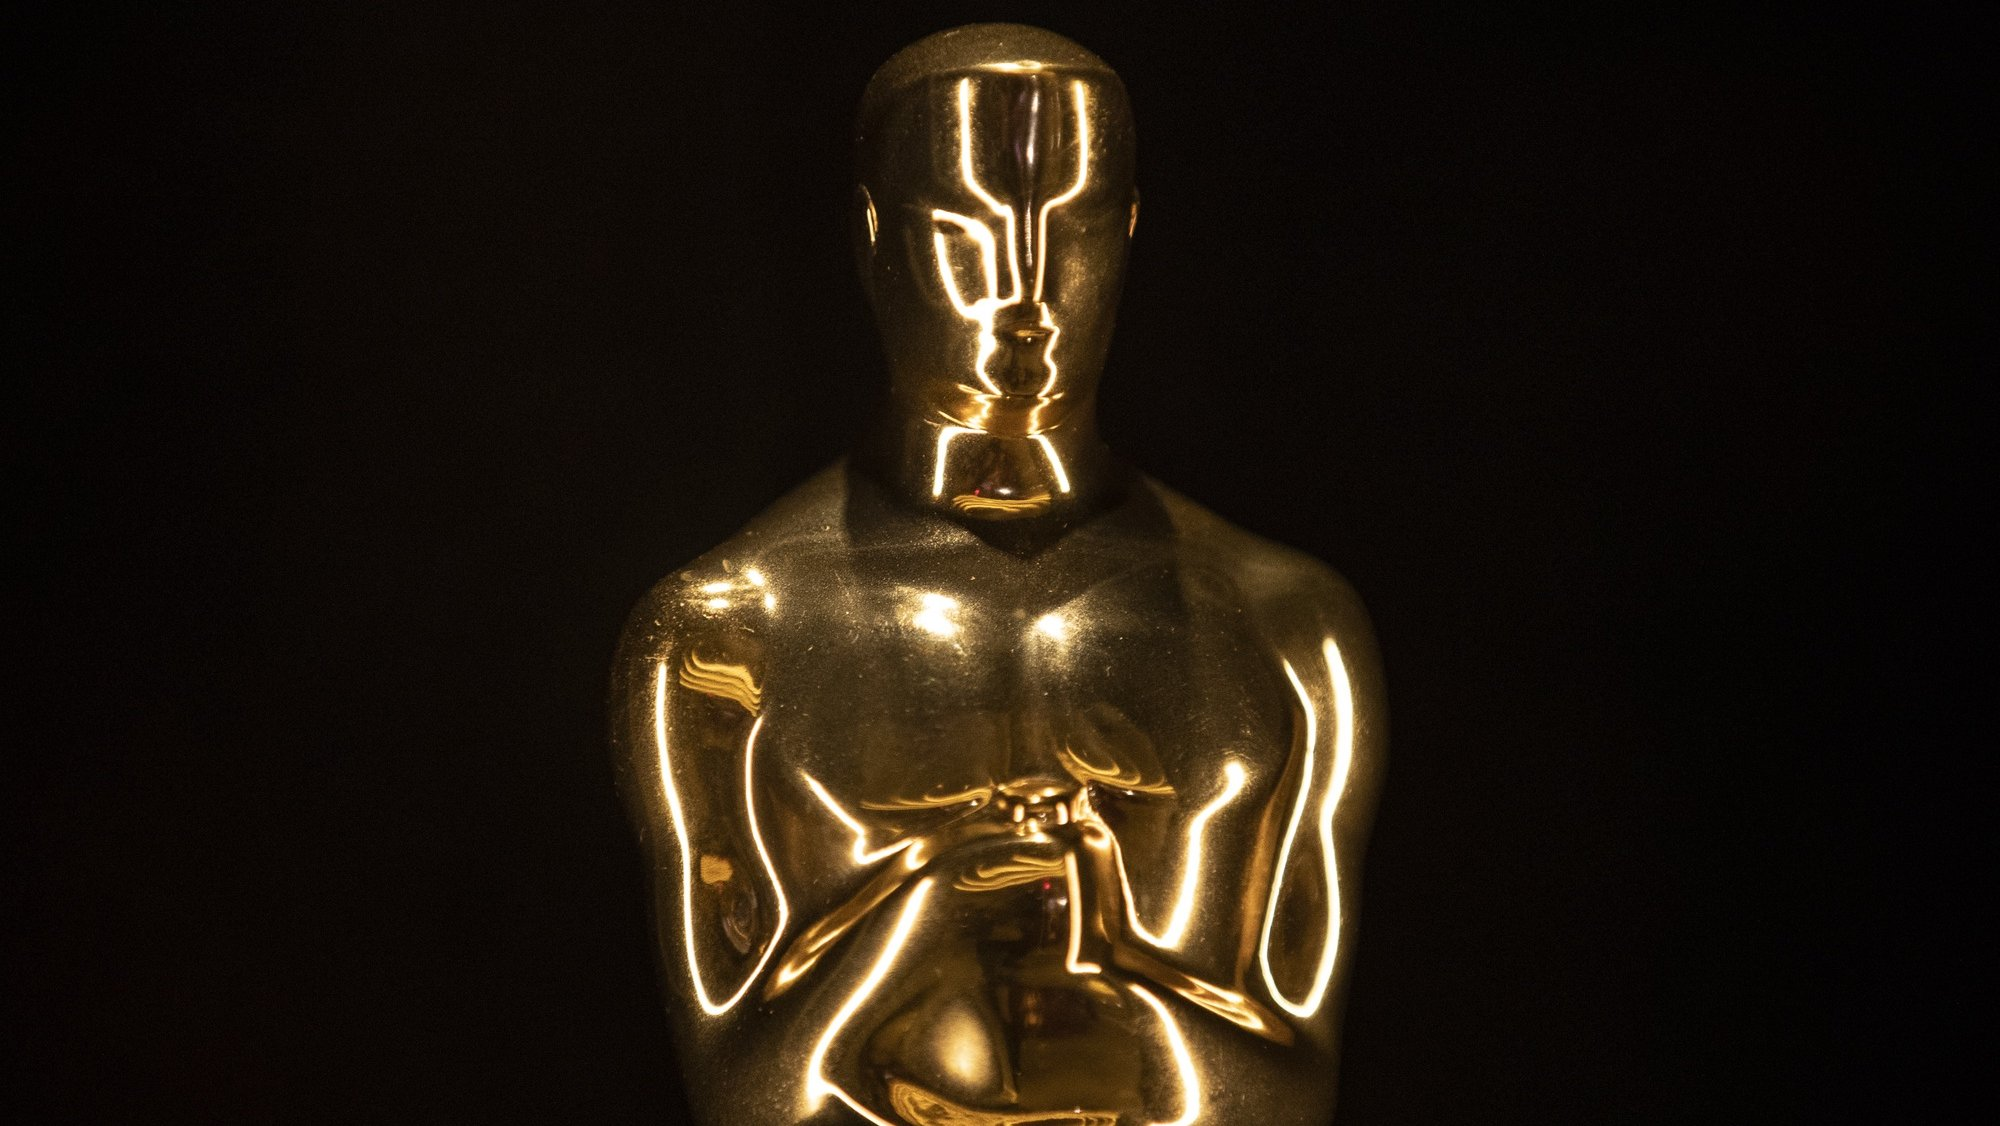 epa09480528 Oscars are displayed in a room during the press preview of the Academy Museum of Motion Pictures in Los Angeles, California, USA, 21 September 2021. The largest US institution devoted to movies and filmmaking, the Academy Museum of Motion Pictures, is set to open its doors to the public on 30 September 2021.  EPA/ETIENNE LAURENT